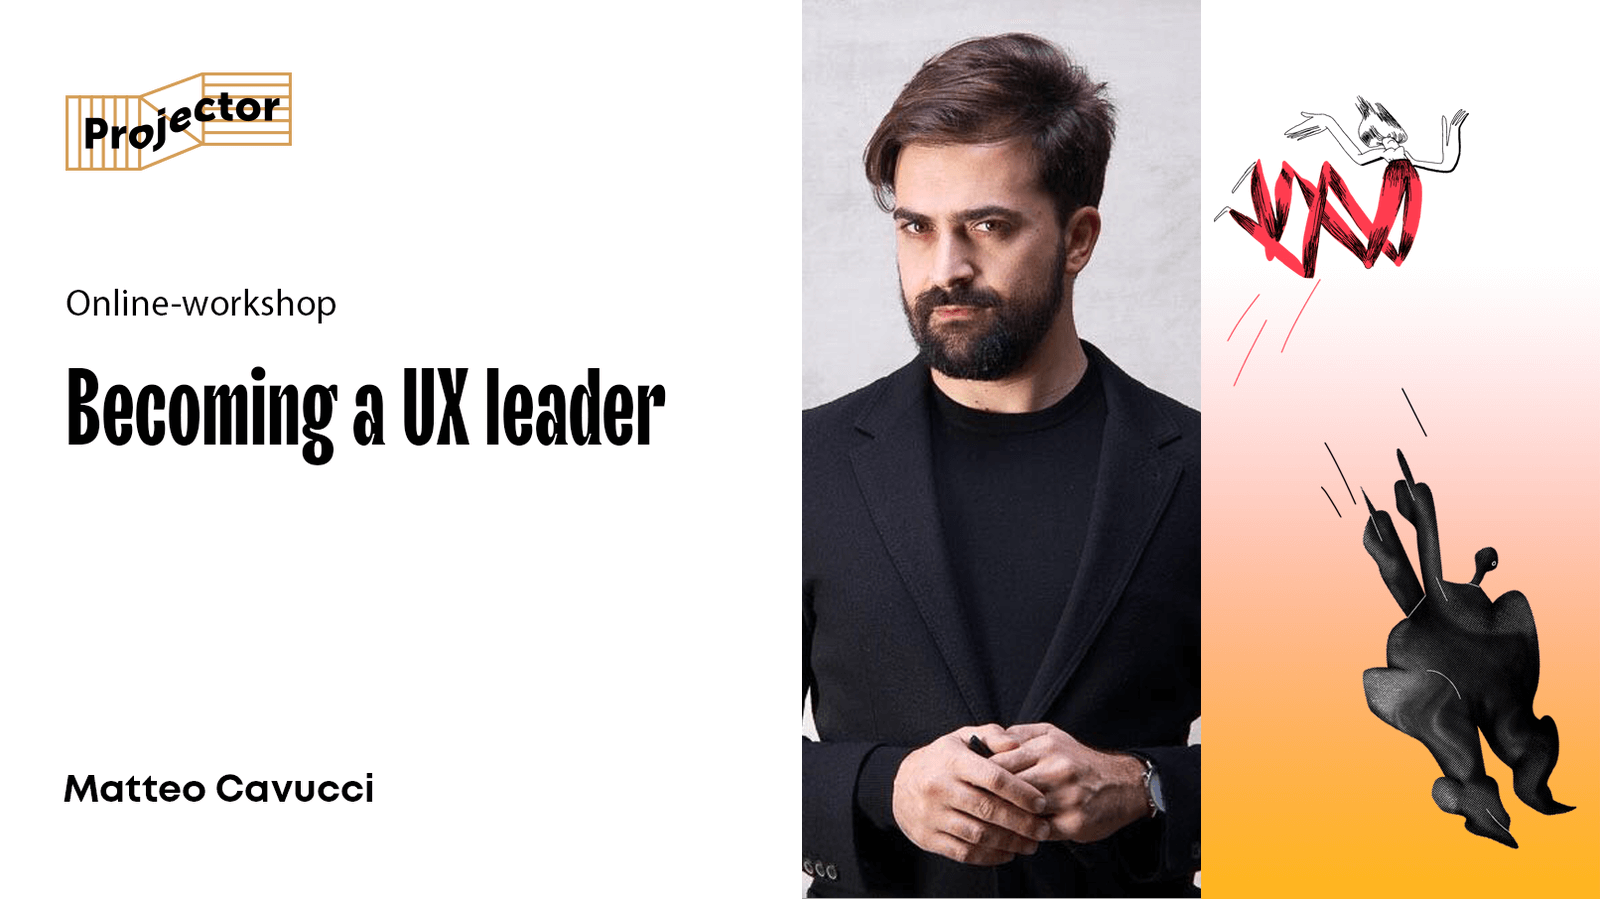 Becoming a UX leader